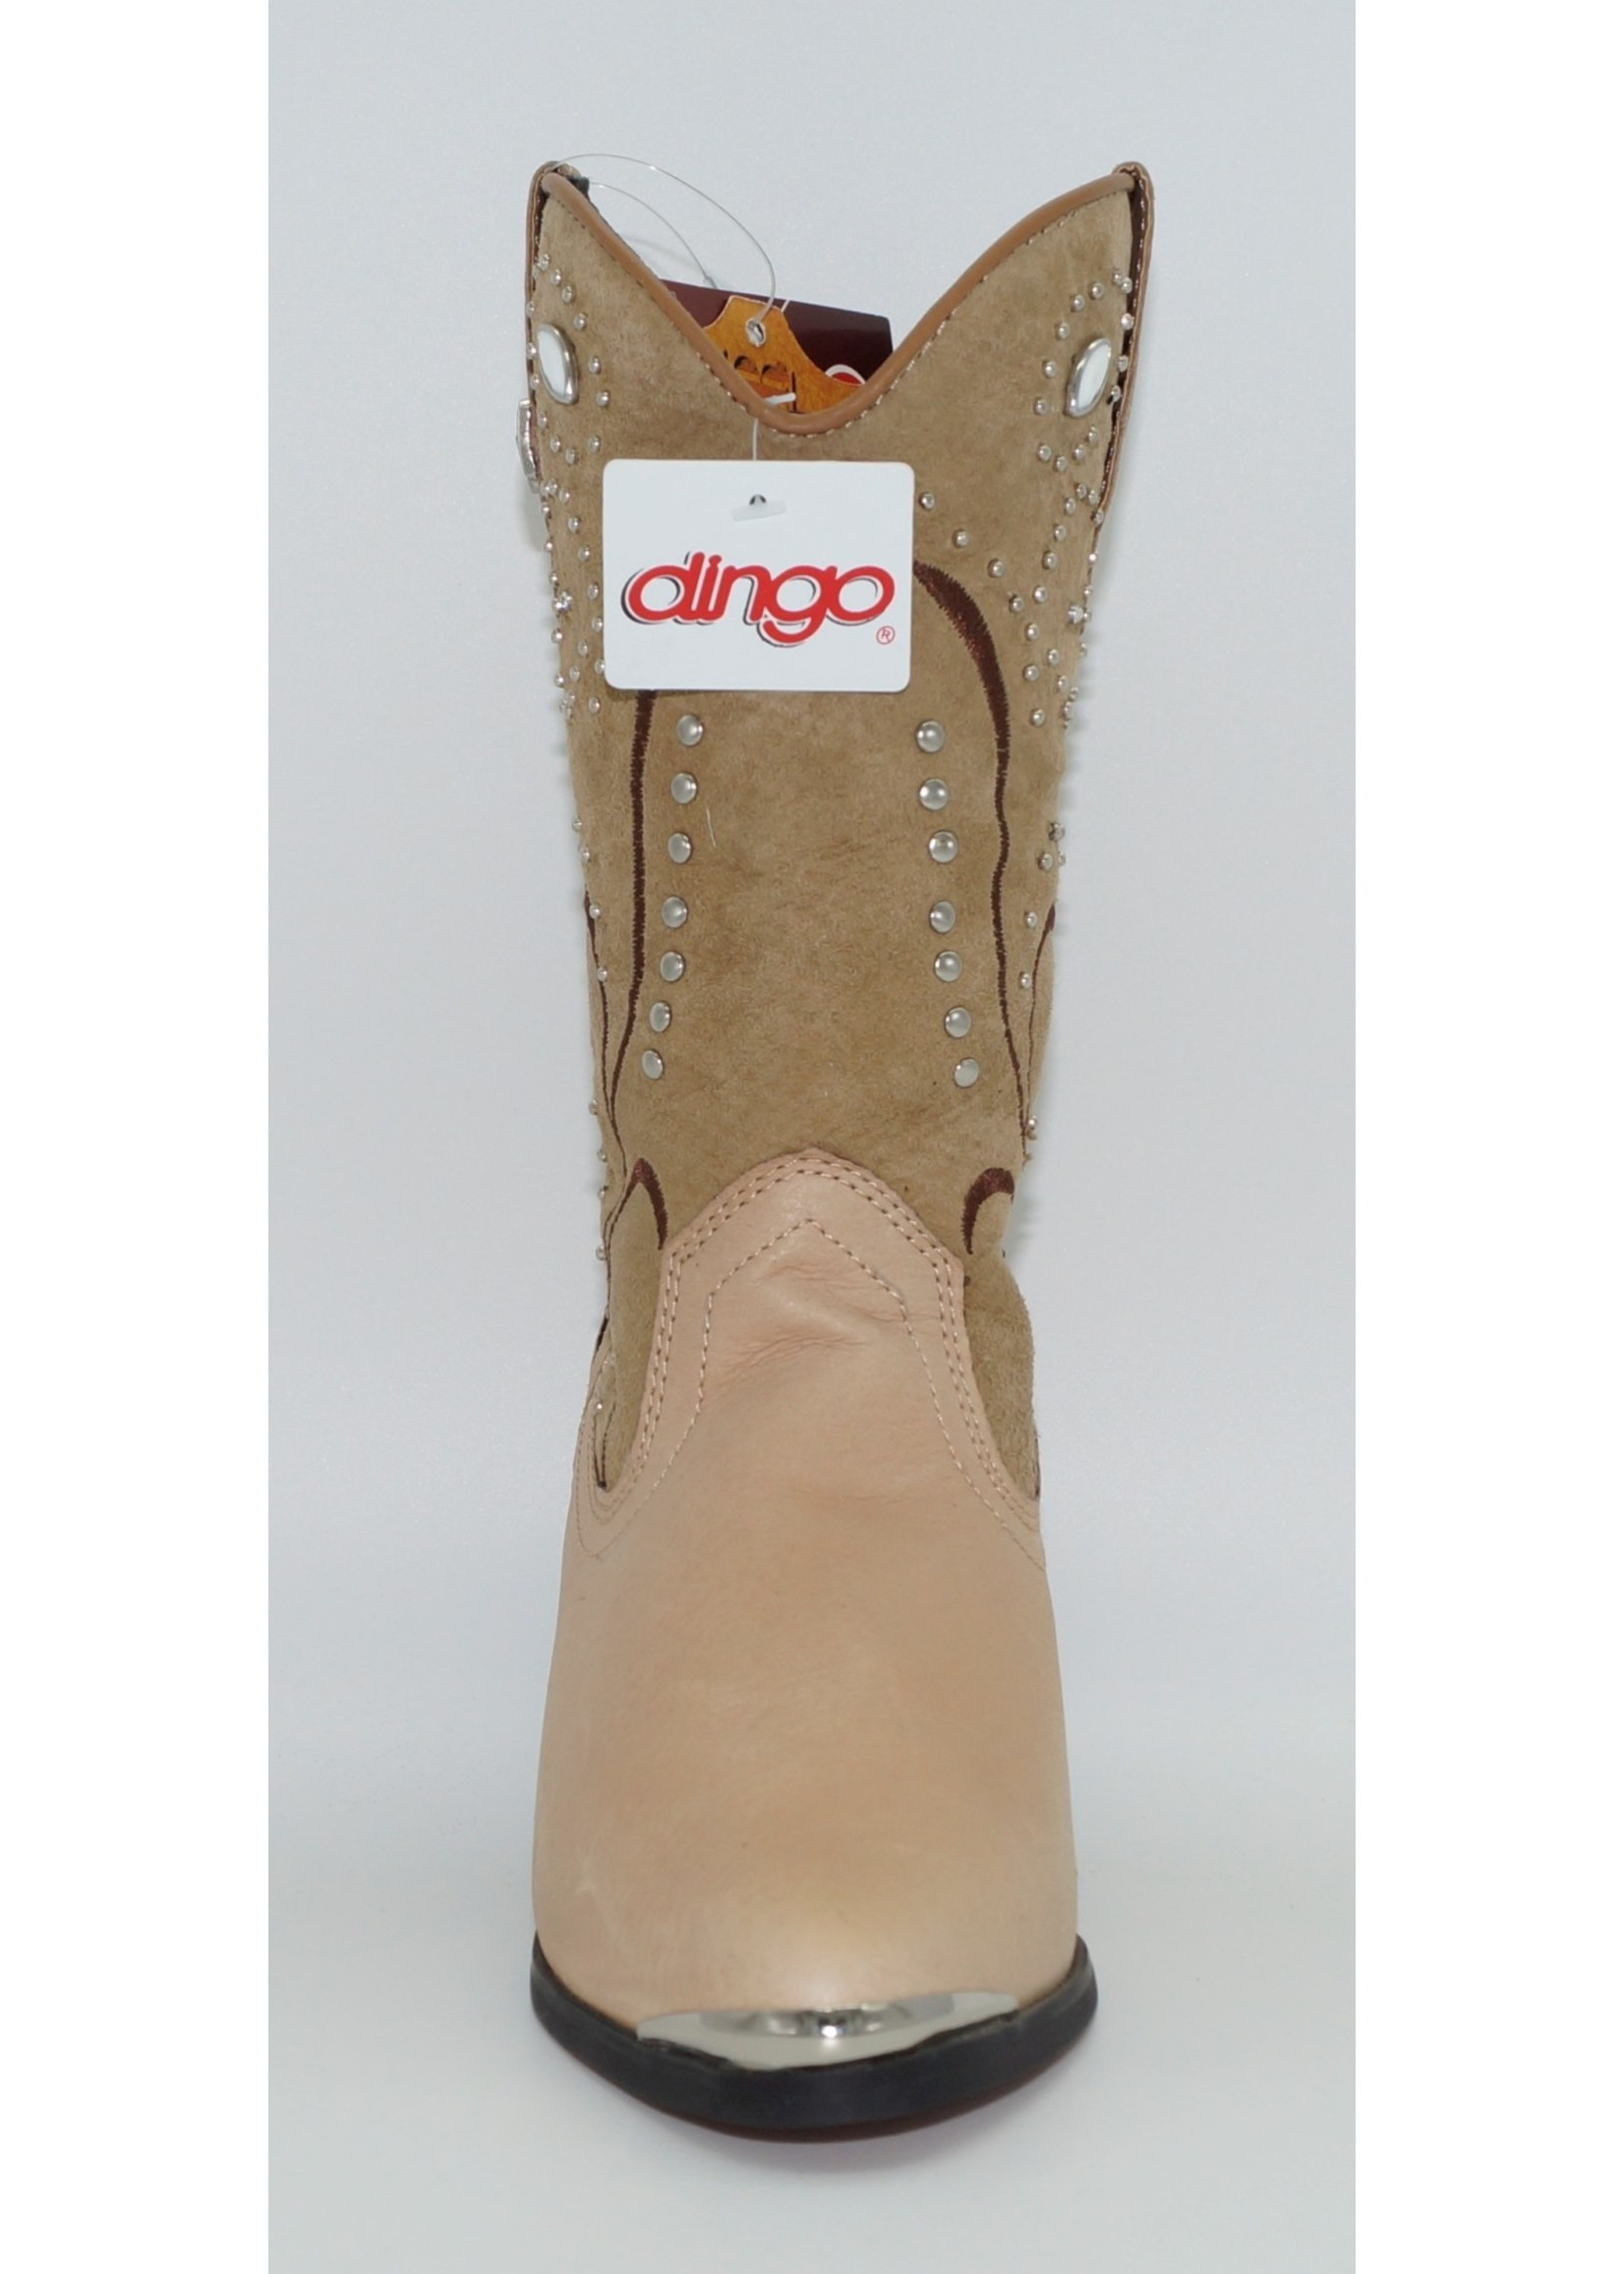 Dingo Women's Studded Tan Western Boots DI588